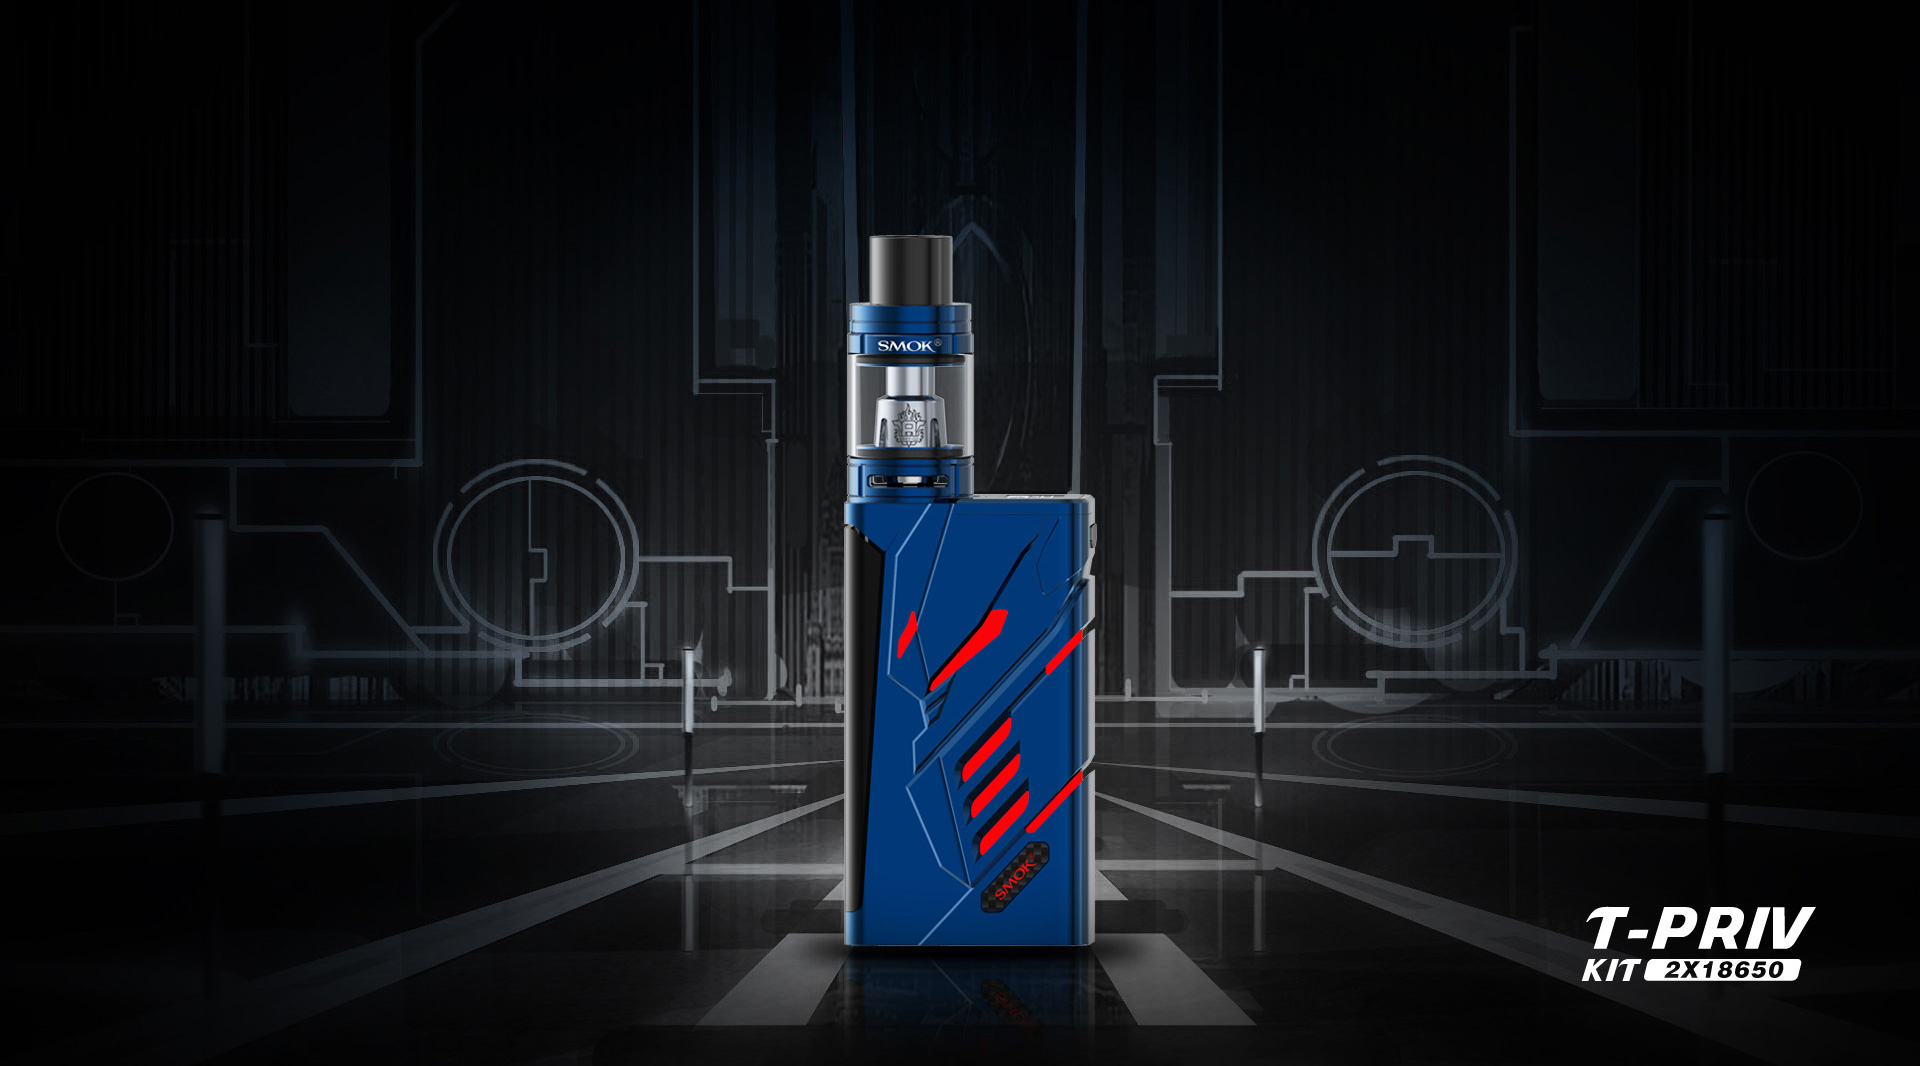 SMOK T-PRIV KIT 220W online in pakistan